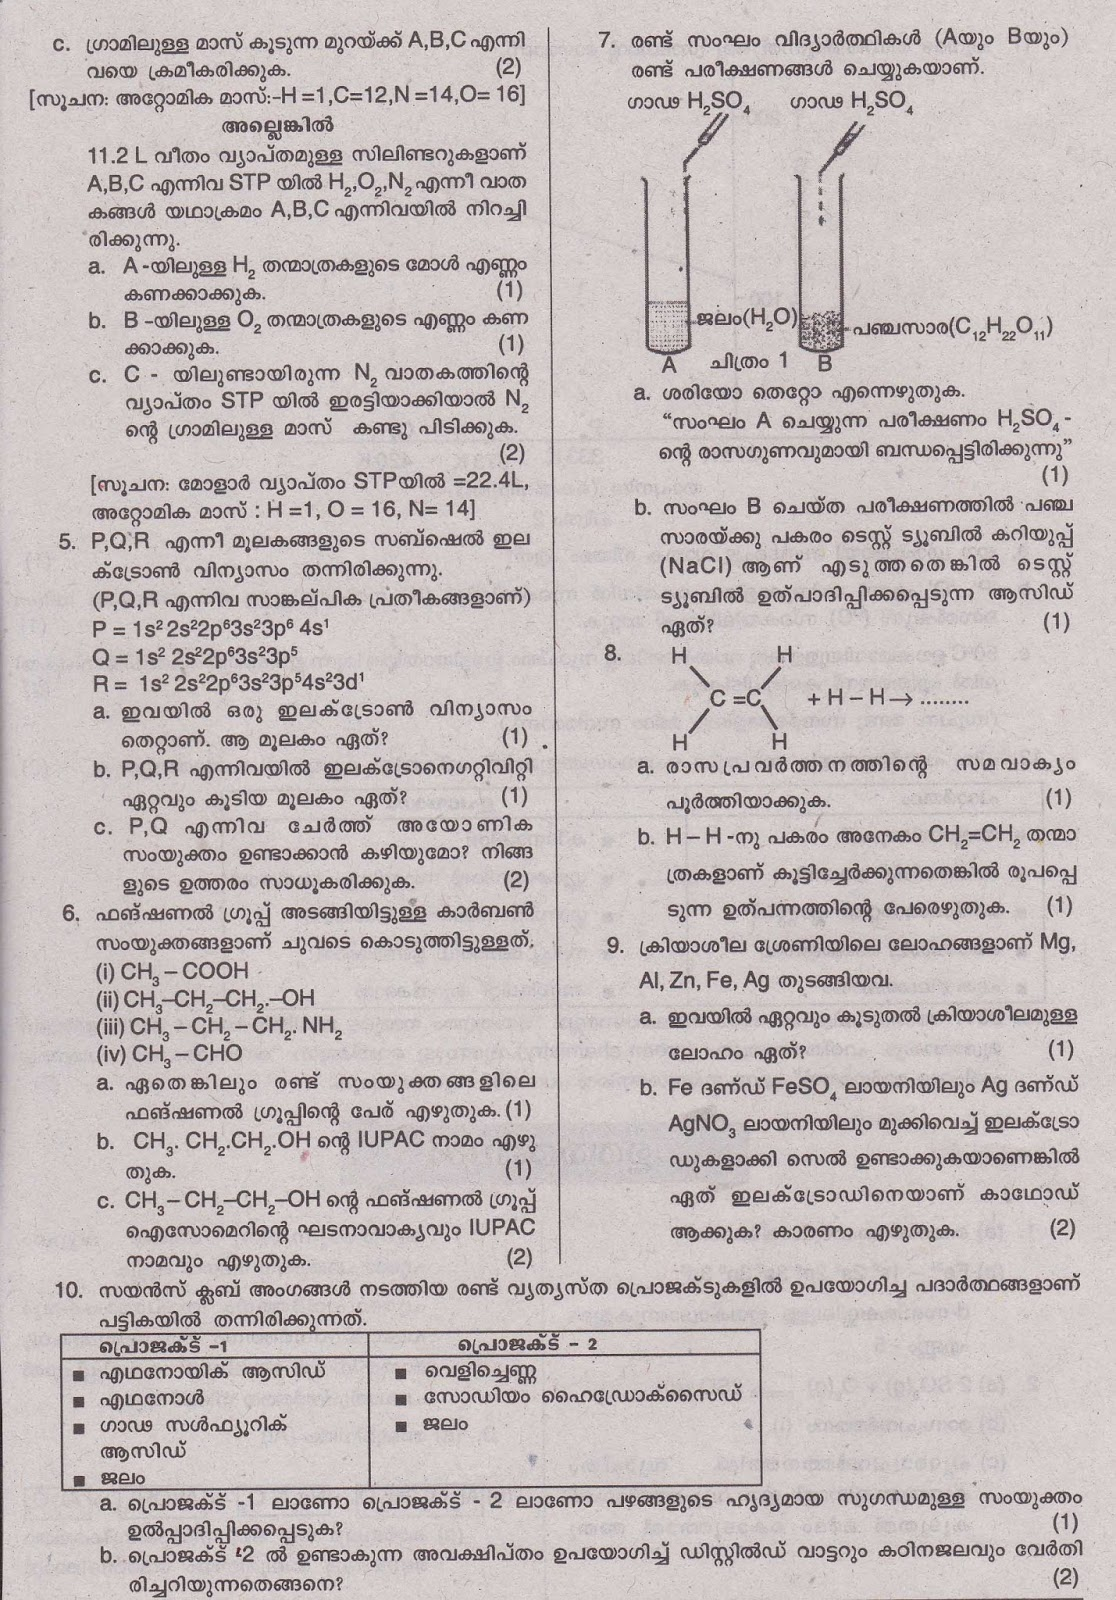 Sslc Model Question Paper 2012 Chemistry